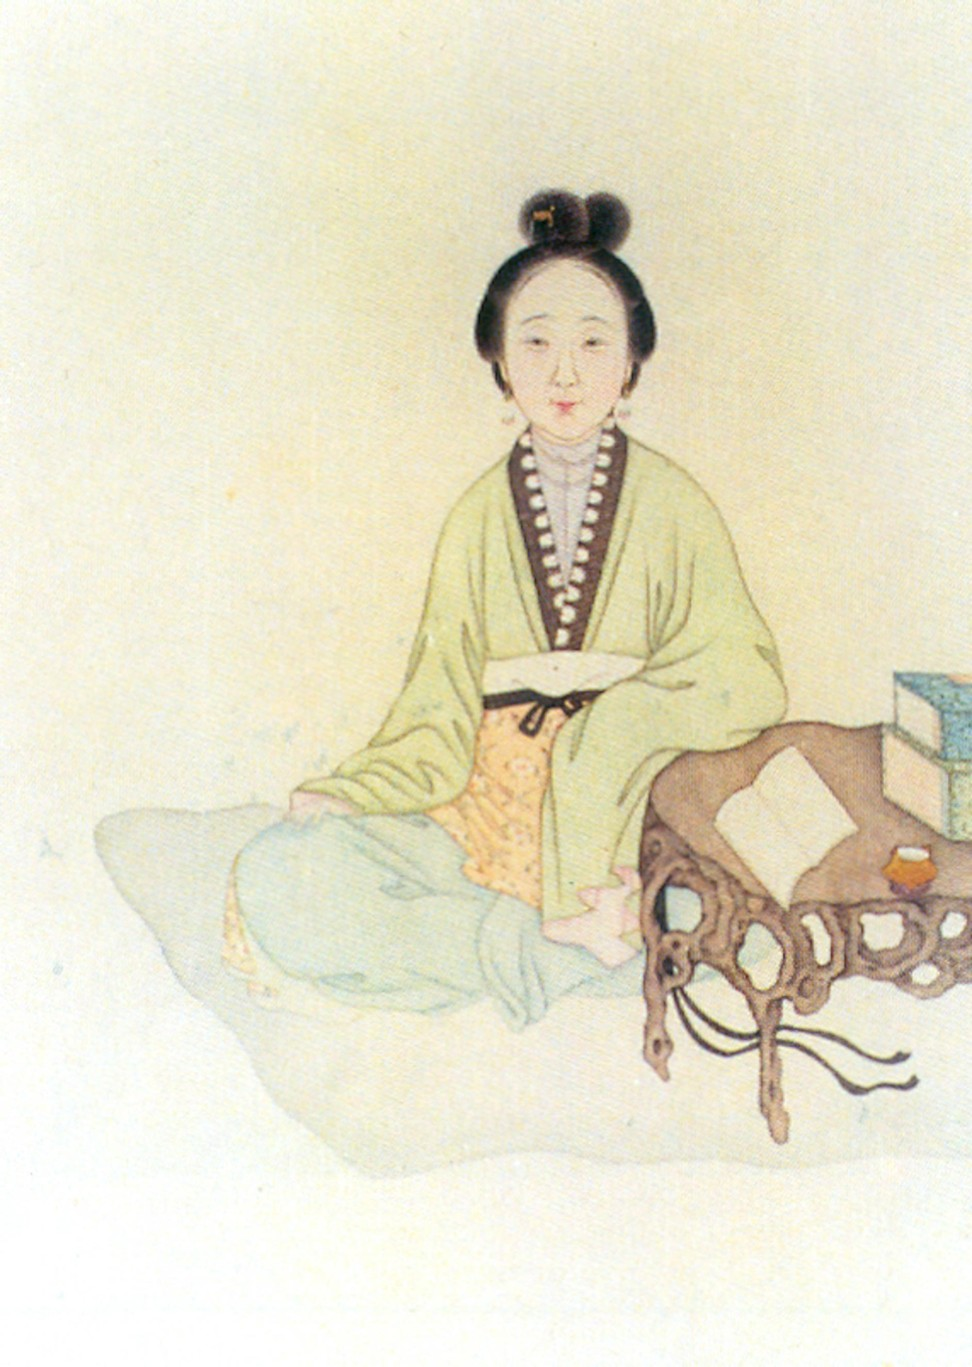 A remote Chinese village kept a courtesan's secret for centuries – now its founding mother takes centre stage